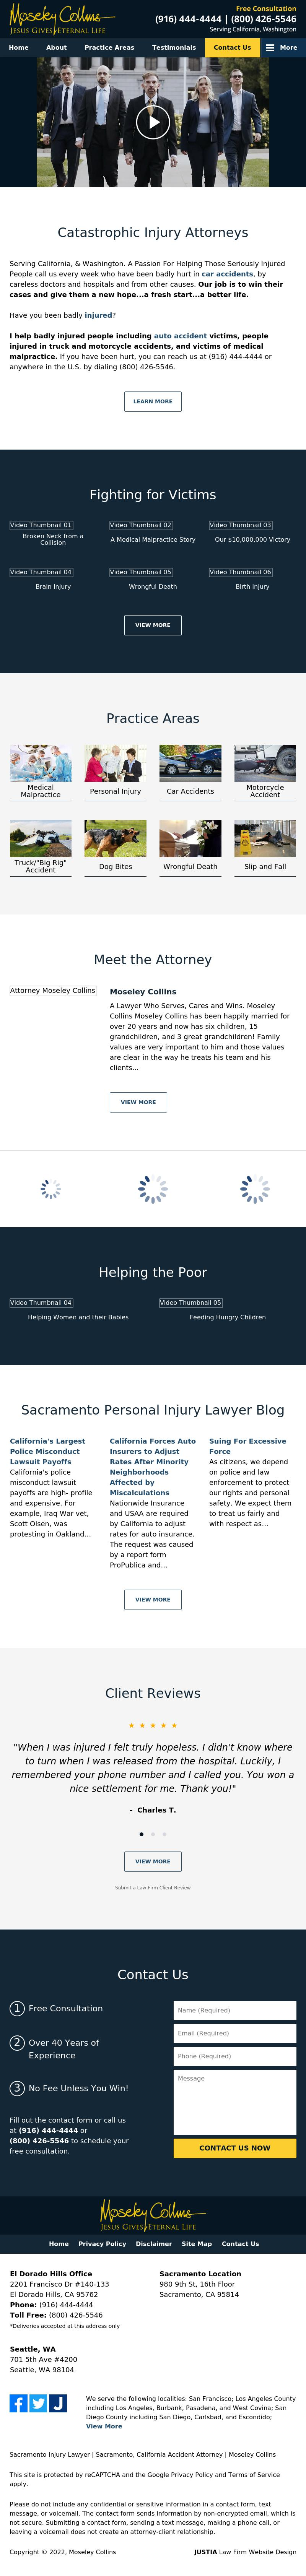 Moseley Collins - San Jose CA Lawyers